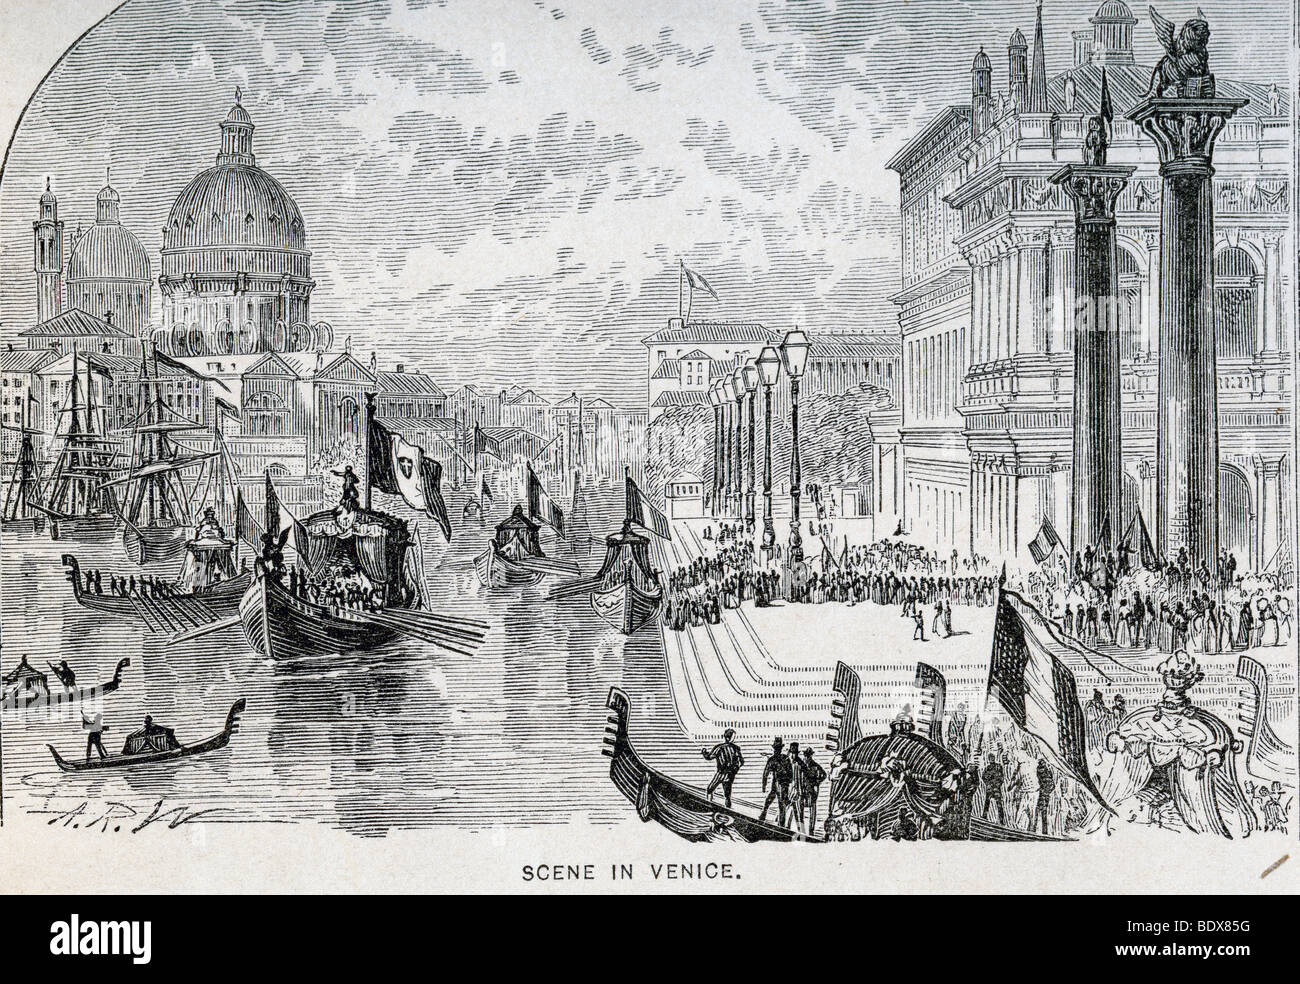 100 year old lithograph - Scene in Venice - Stock Image